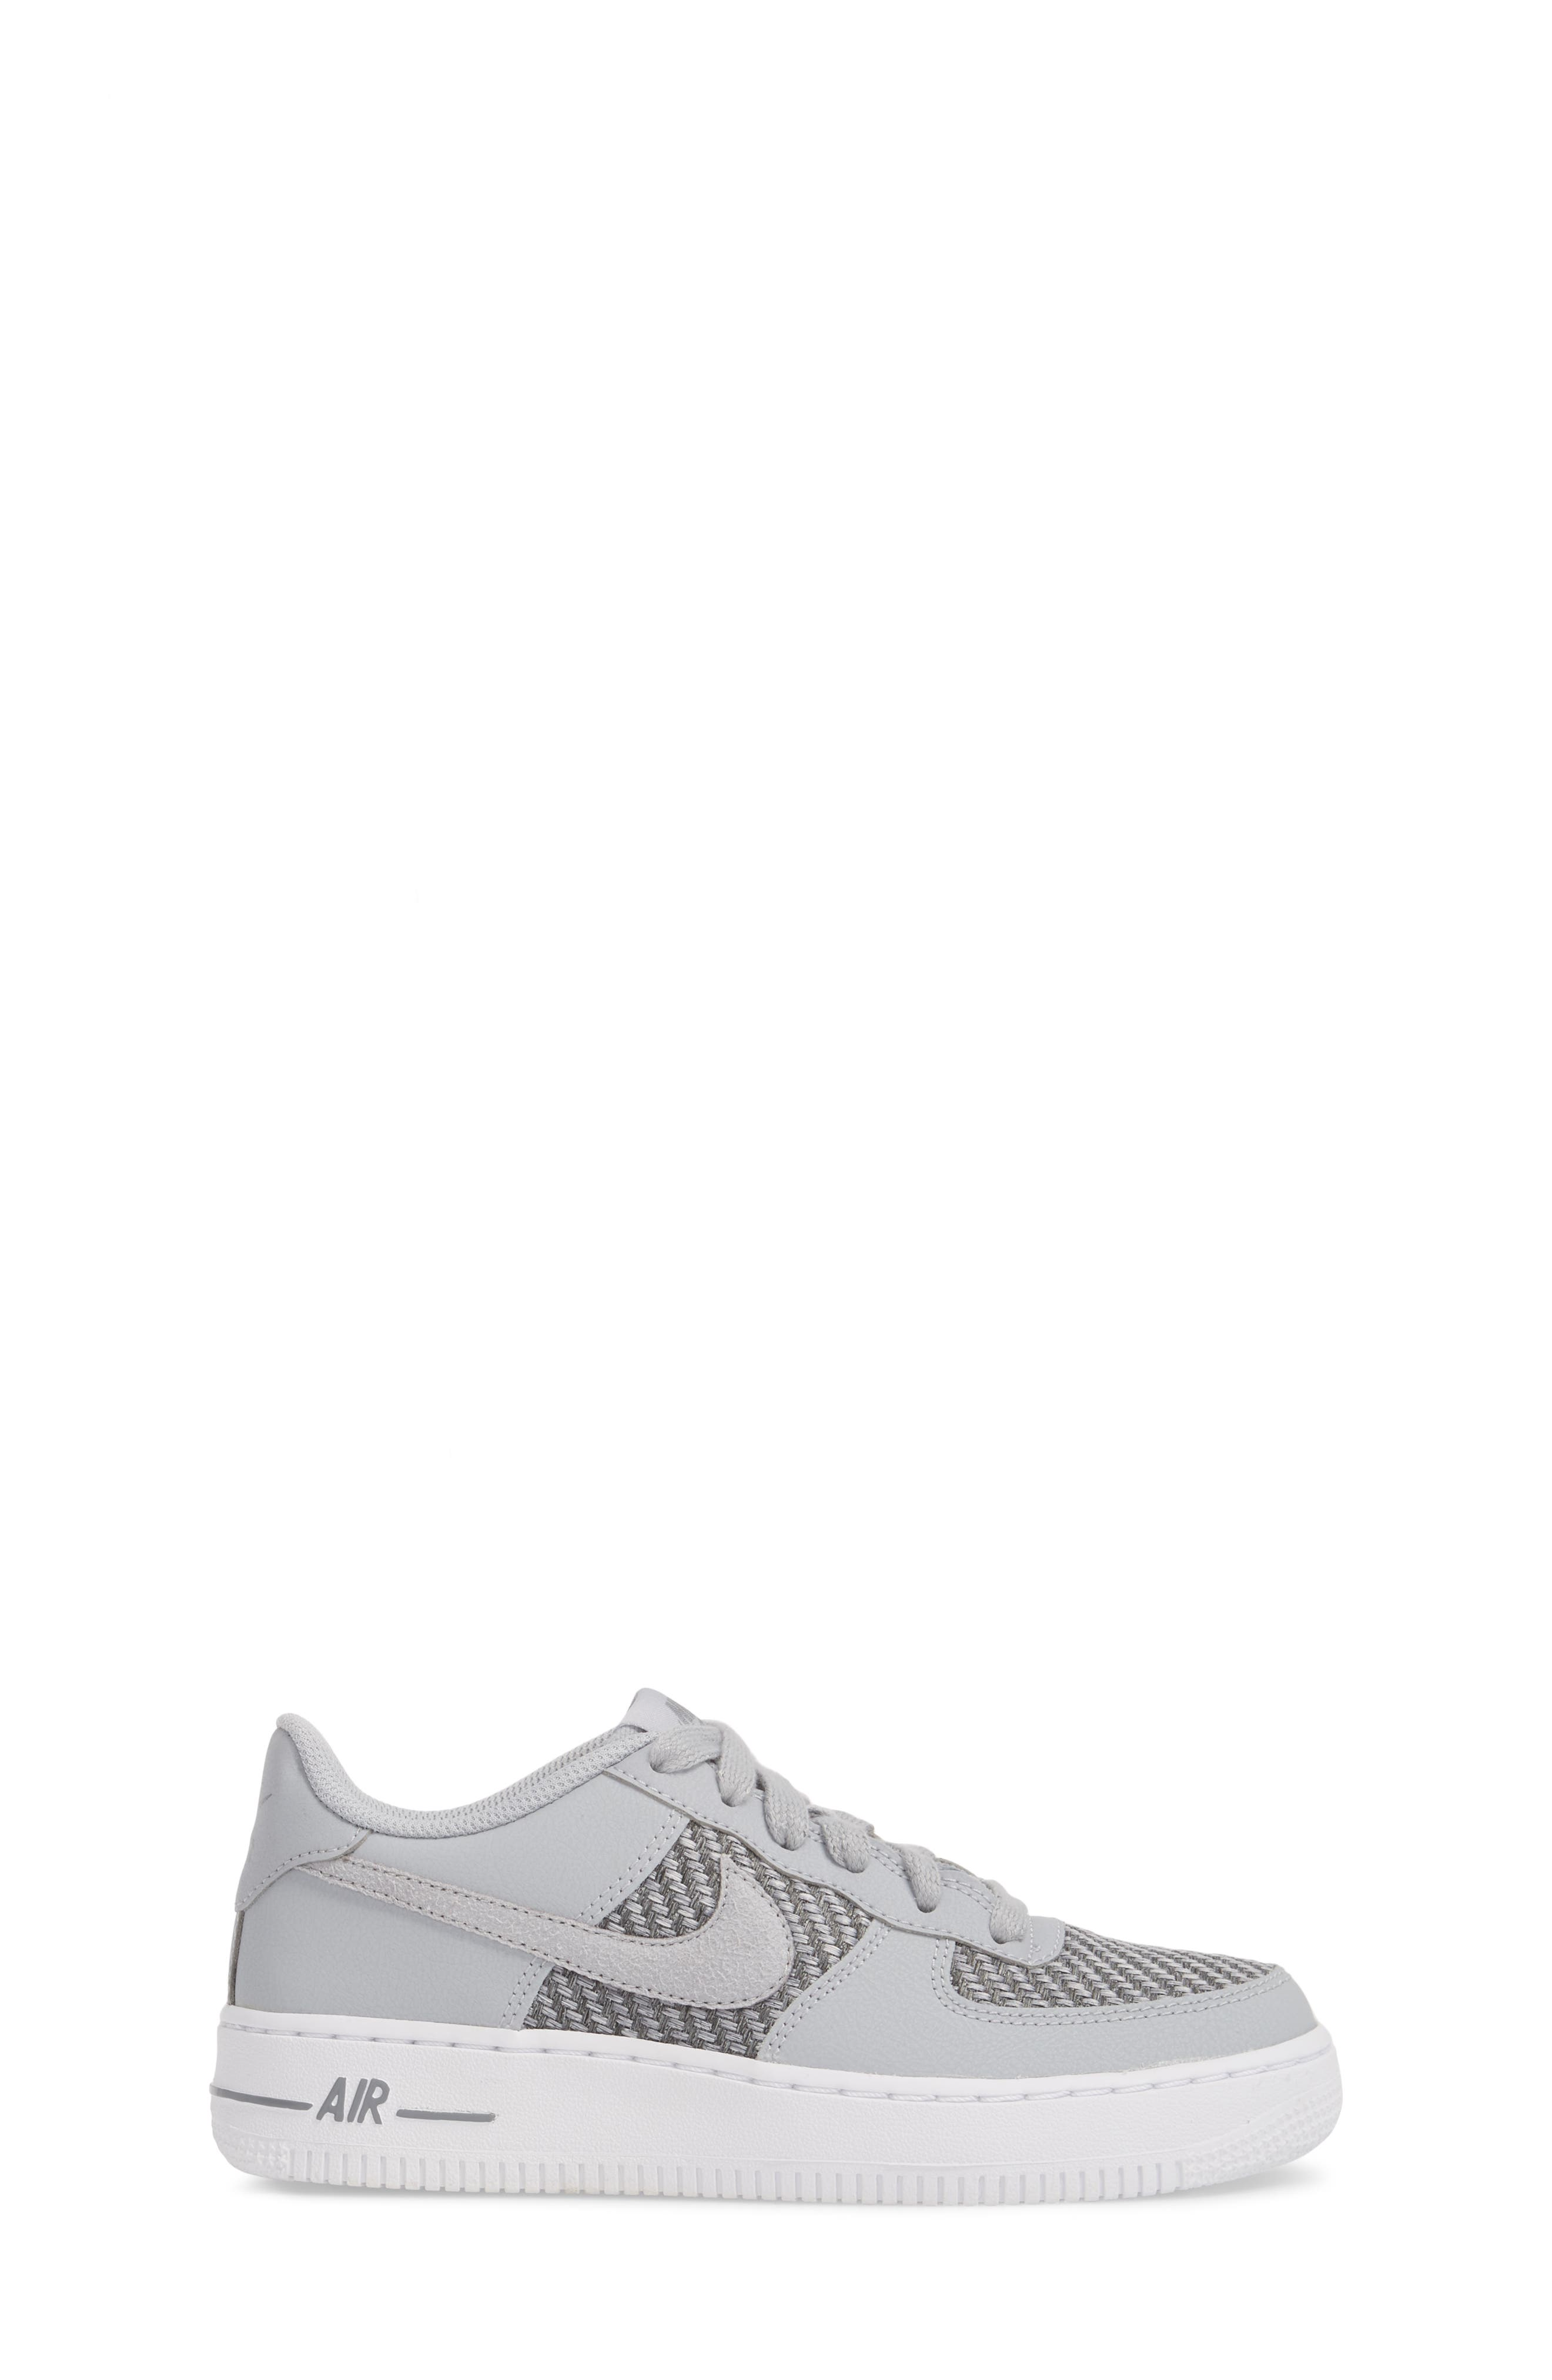 Air Force 1 LV8 Sneaker,                             Alternate thumbnail 3, color,                             Cool Grey/ White